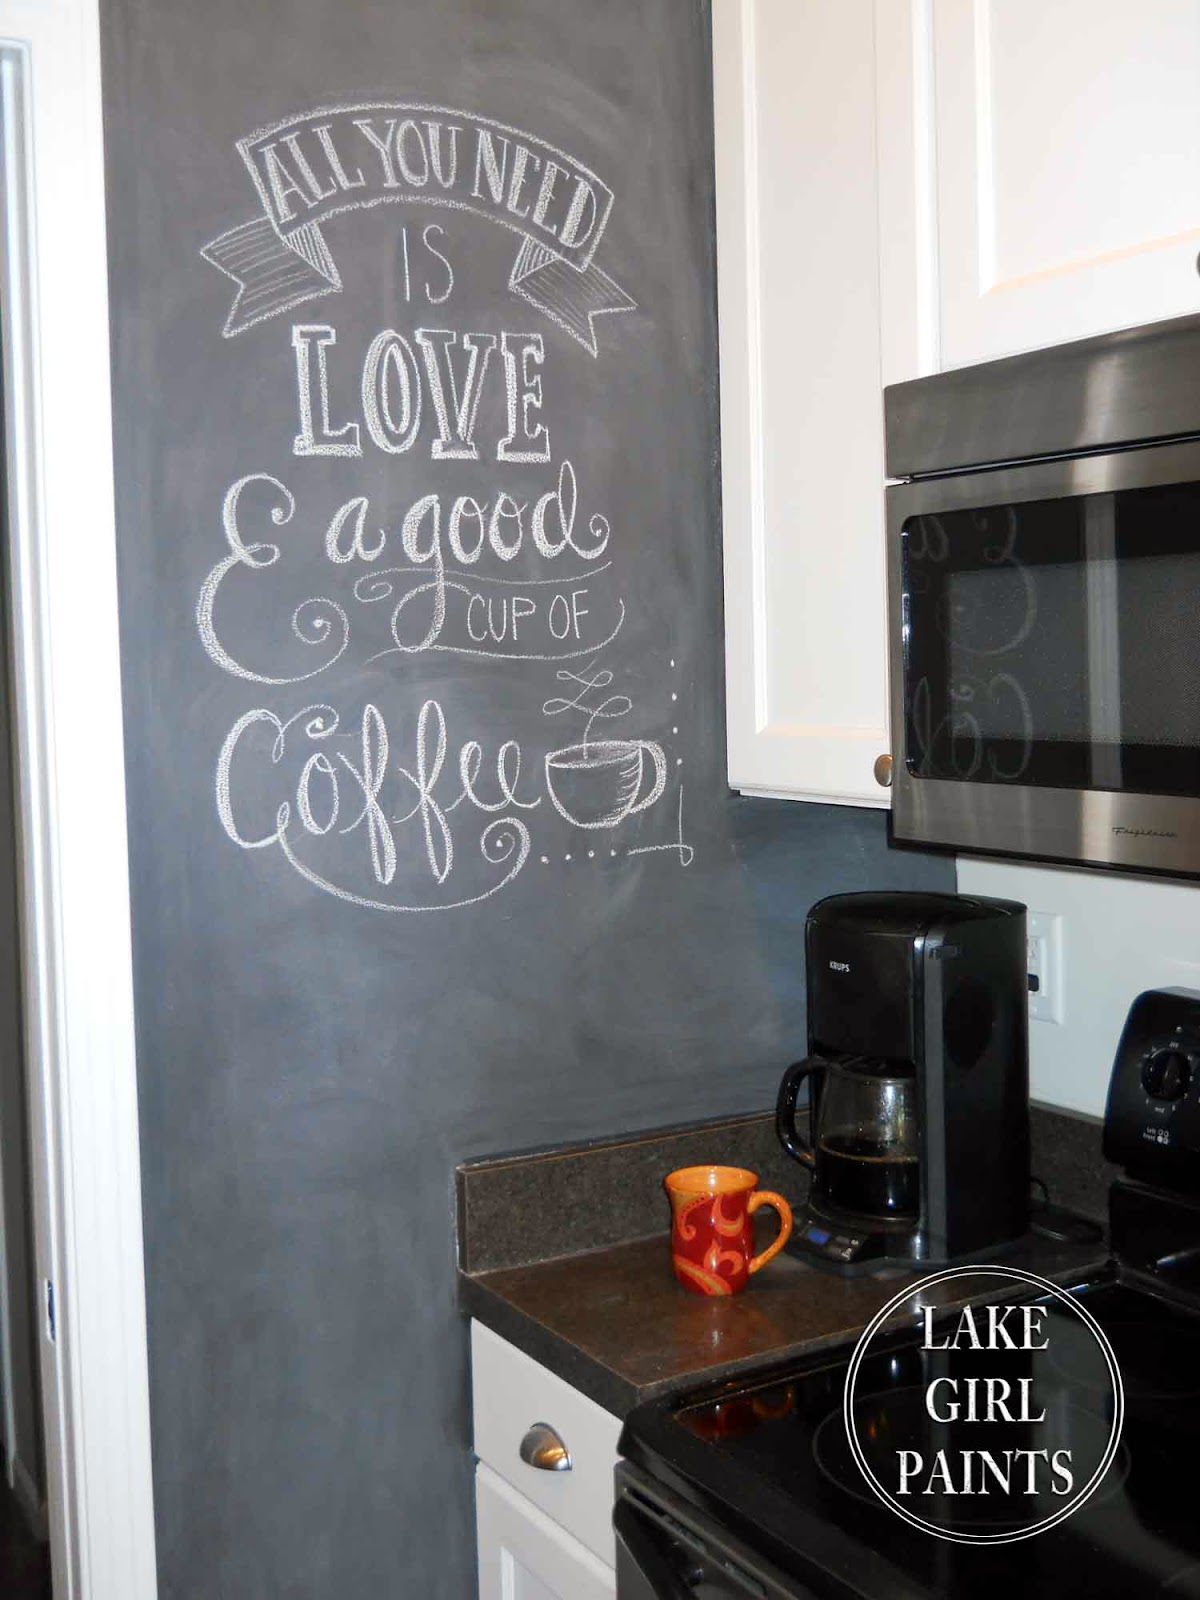 Lake girl paints painting my kitchen wall with chalkboard - Kitchen chalkboard paint ideas ...